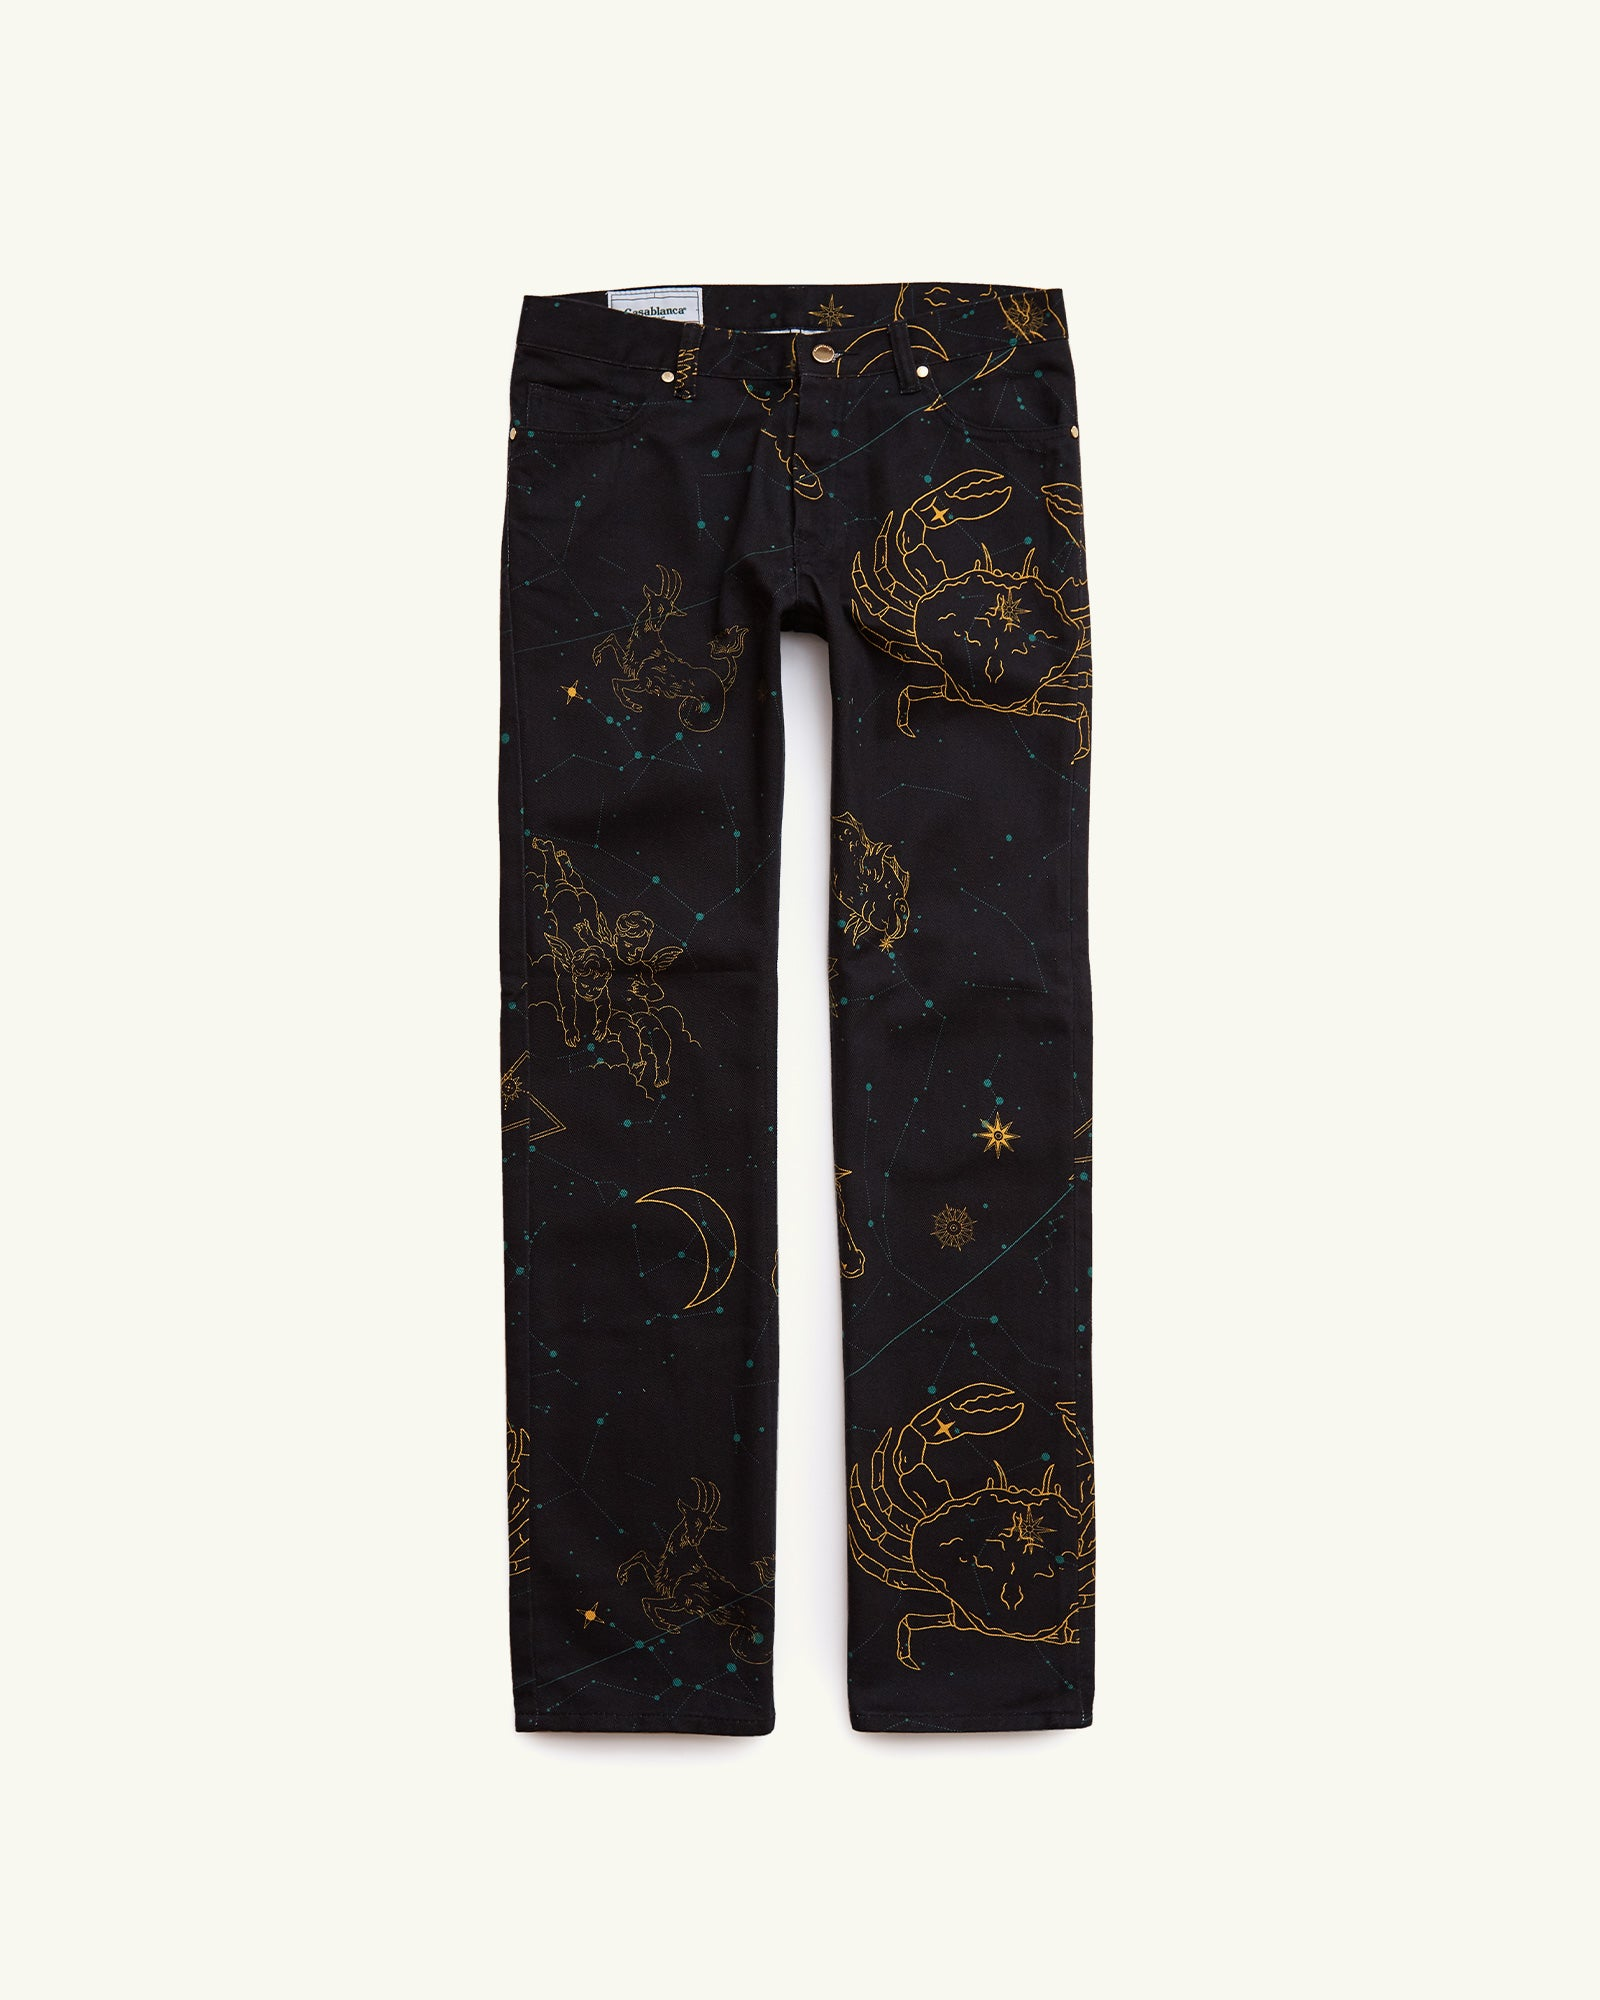 Constellation Denim Jeans